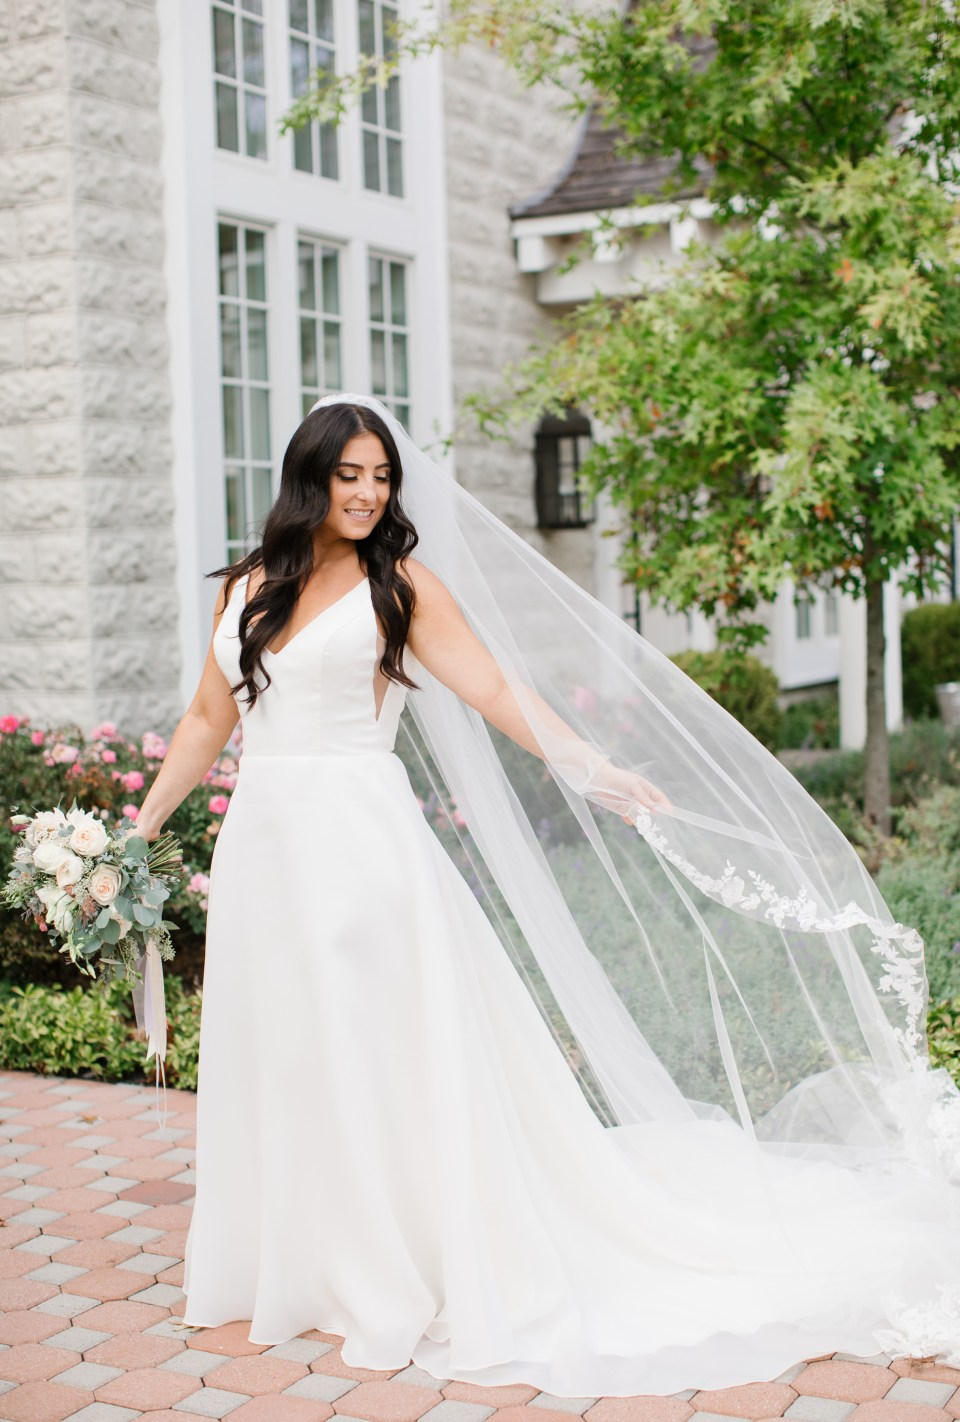 classic wedding portrait of bride in Christina Wu gown by Ashley Mac Photographs